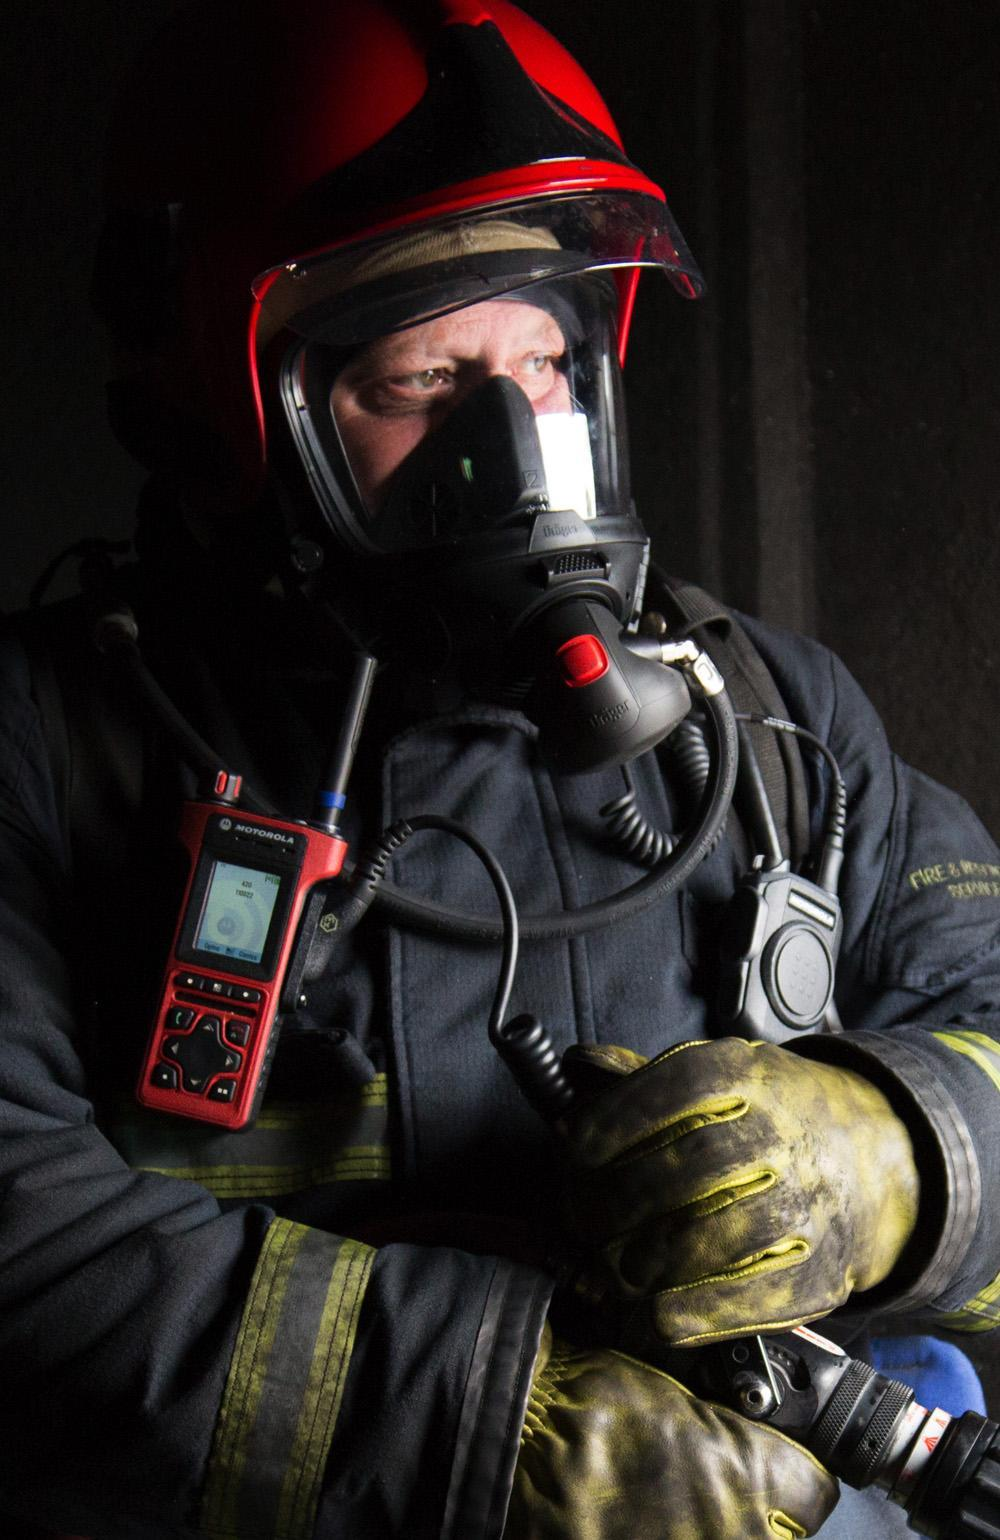 FIRE ACCESSORIES ACTIVE NOISE CANCELLING RSM Communicate in the most demanding Fire Ground environments.